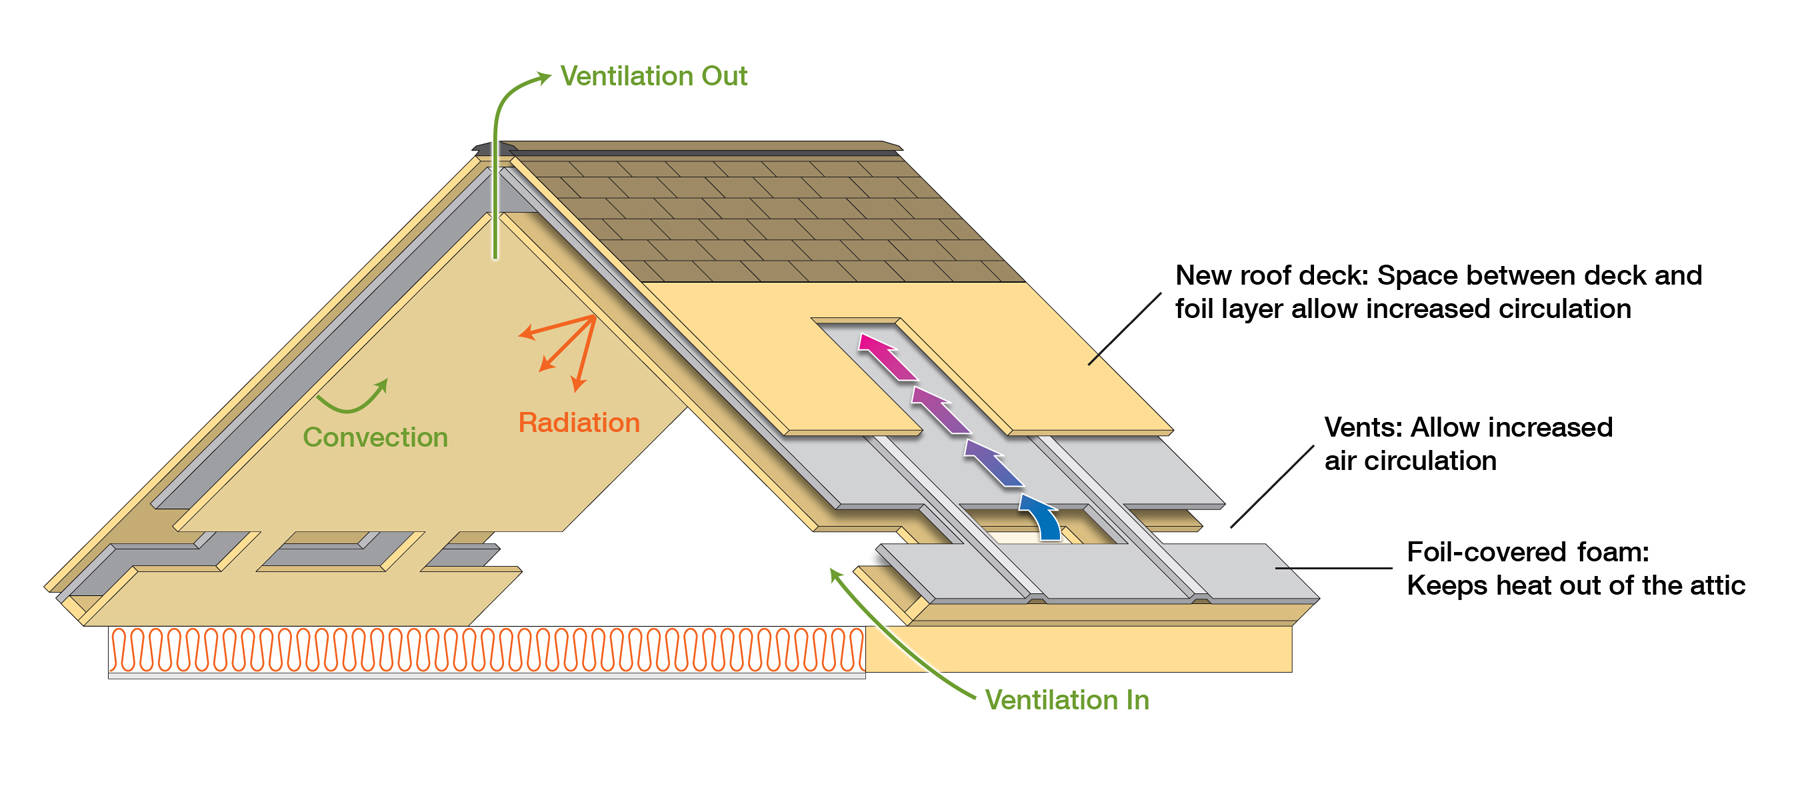 Something practical new roof design saves energy watts for New home insulation